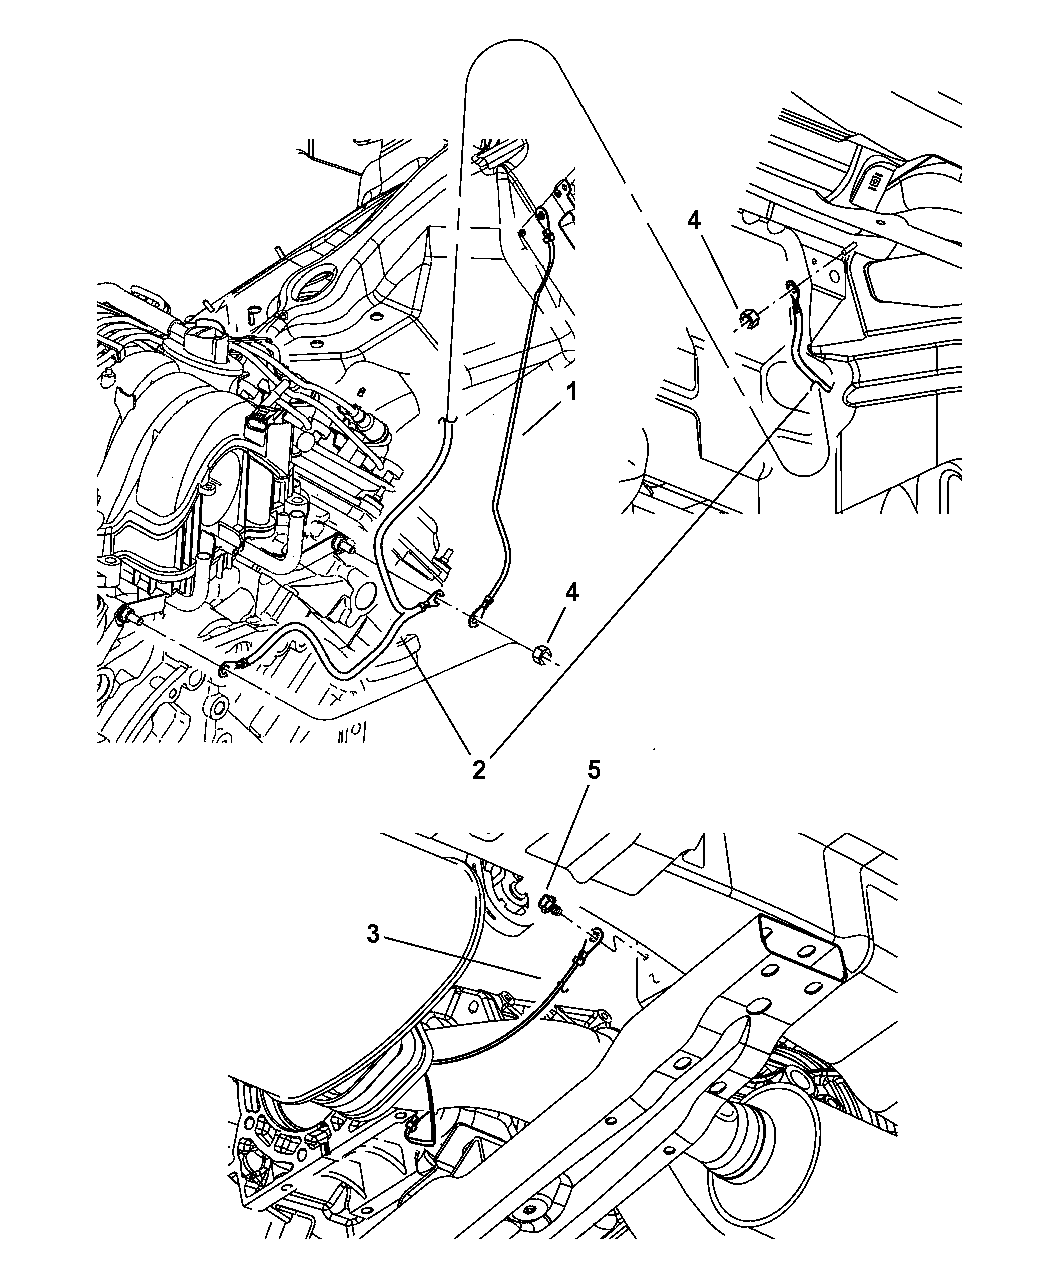 2009 jeep grand cherokee engine diagram 2009 jeep grand cherokee ground straps powertrain  2009 jeep grand cherokee ground straps